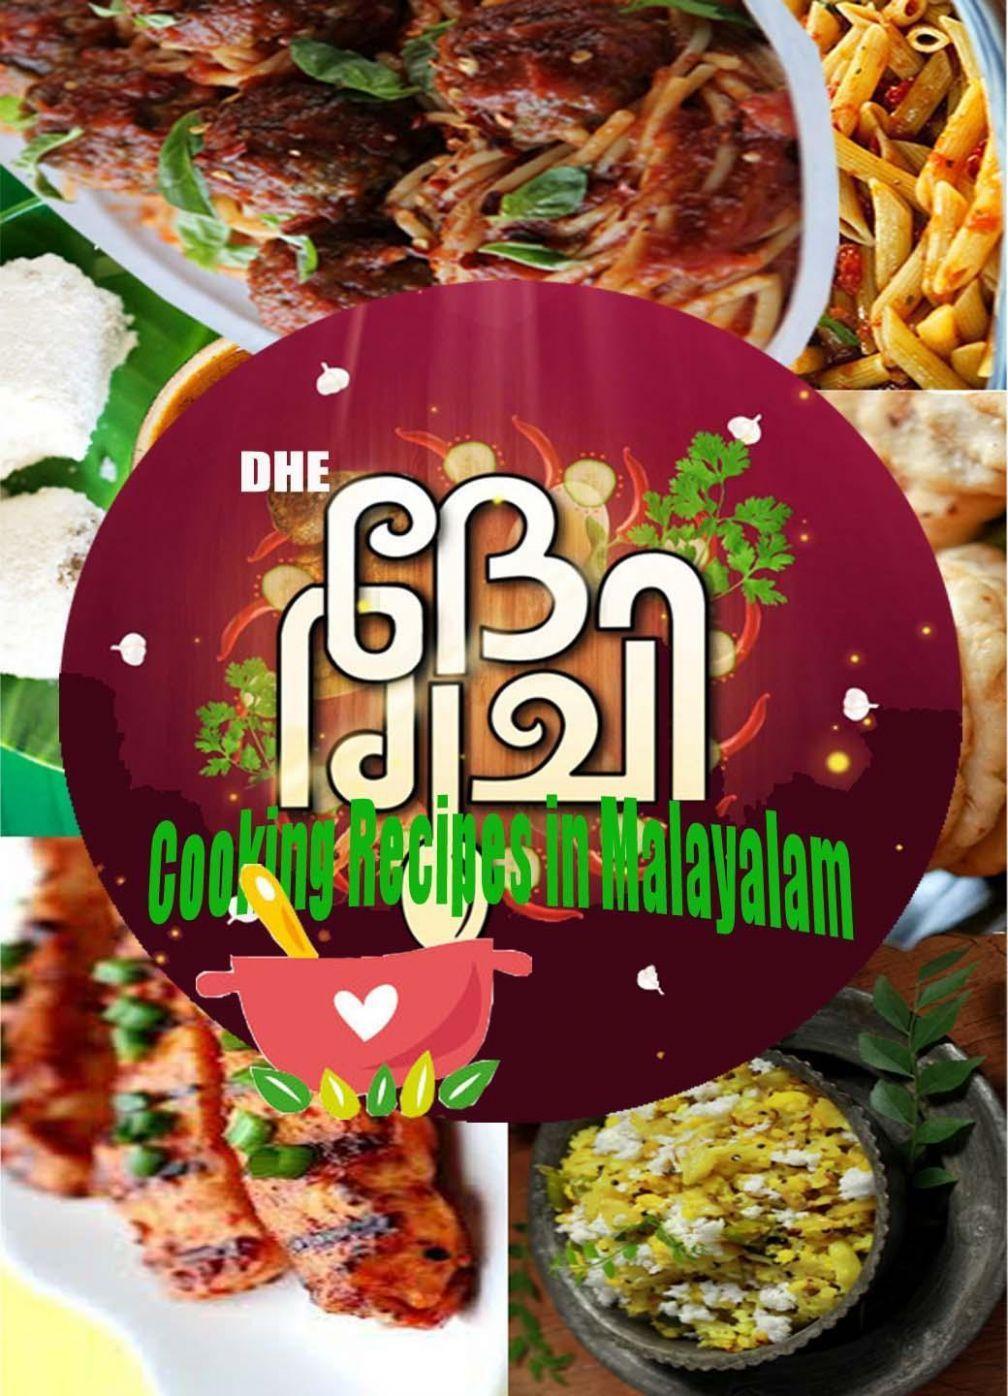 DHE RUCHI Cooking Recipes for Android - APK Download